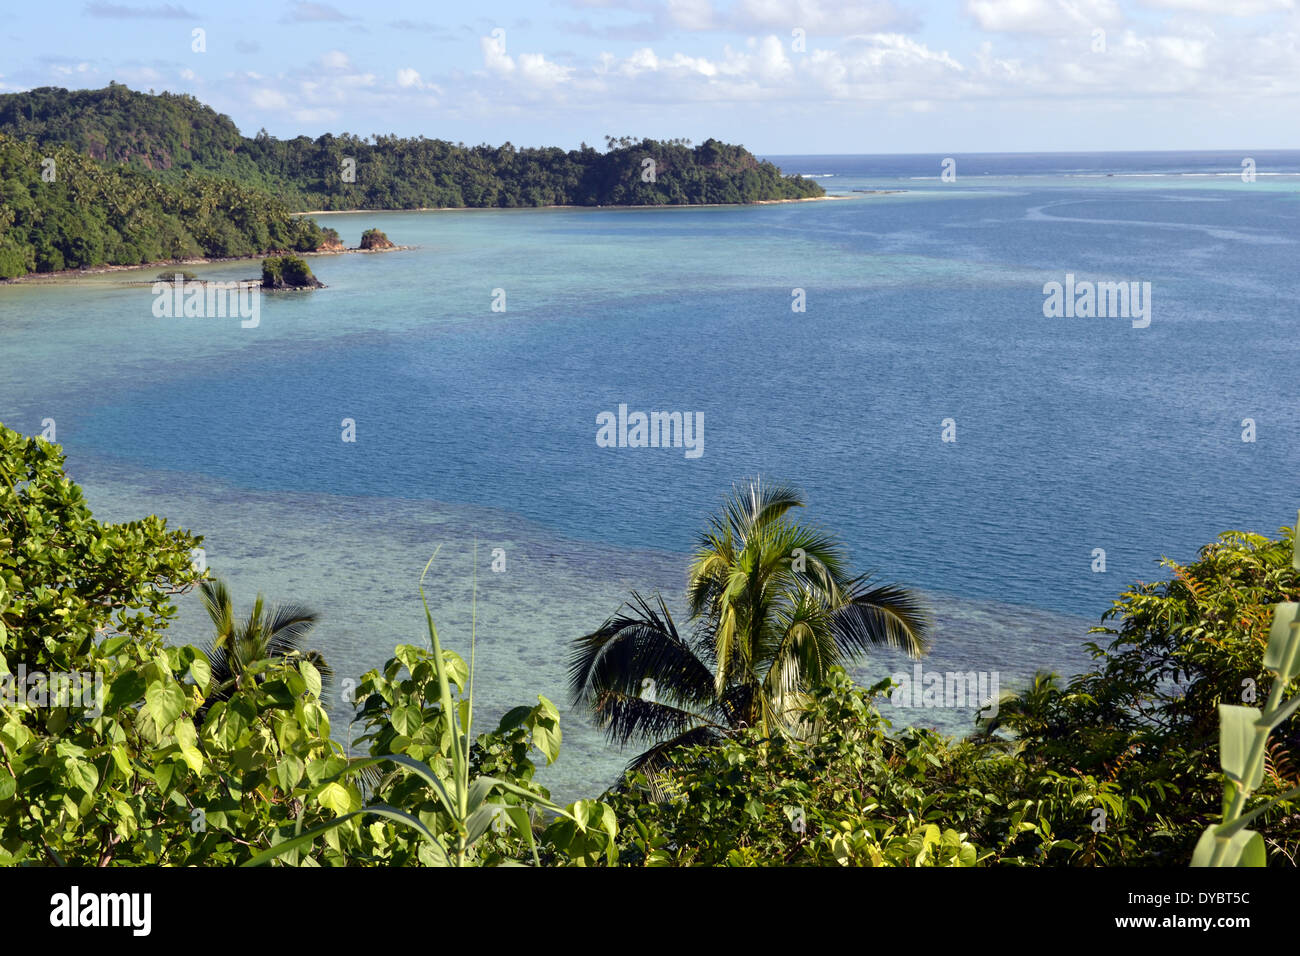 View of Nukuatea Islet, Wallis Island, Wallis and Futuna, Melanesia, South Pacific - Stock Image